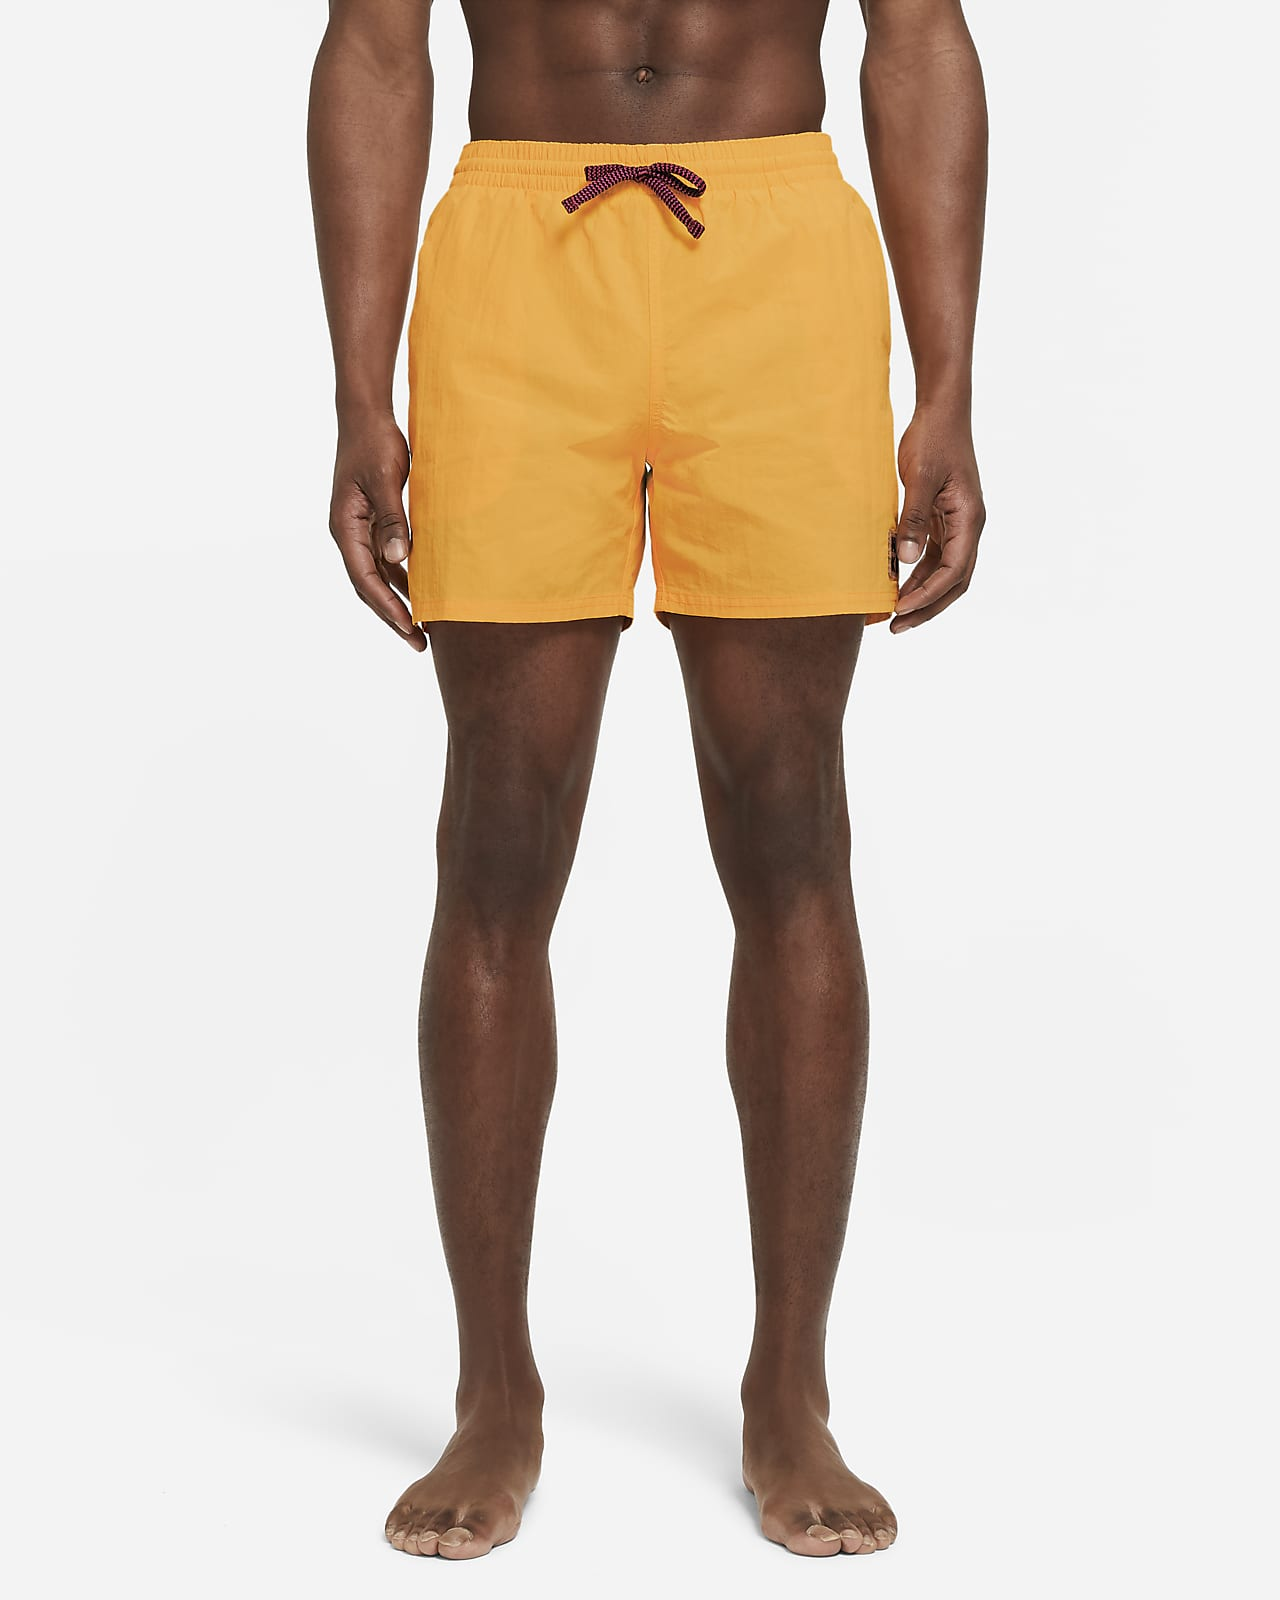 Nike Solid Icon Men's 13cm (approx.) Swimming Trunks